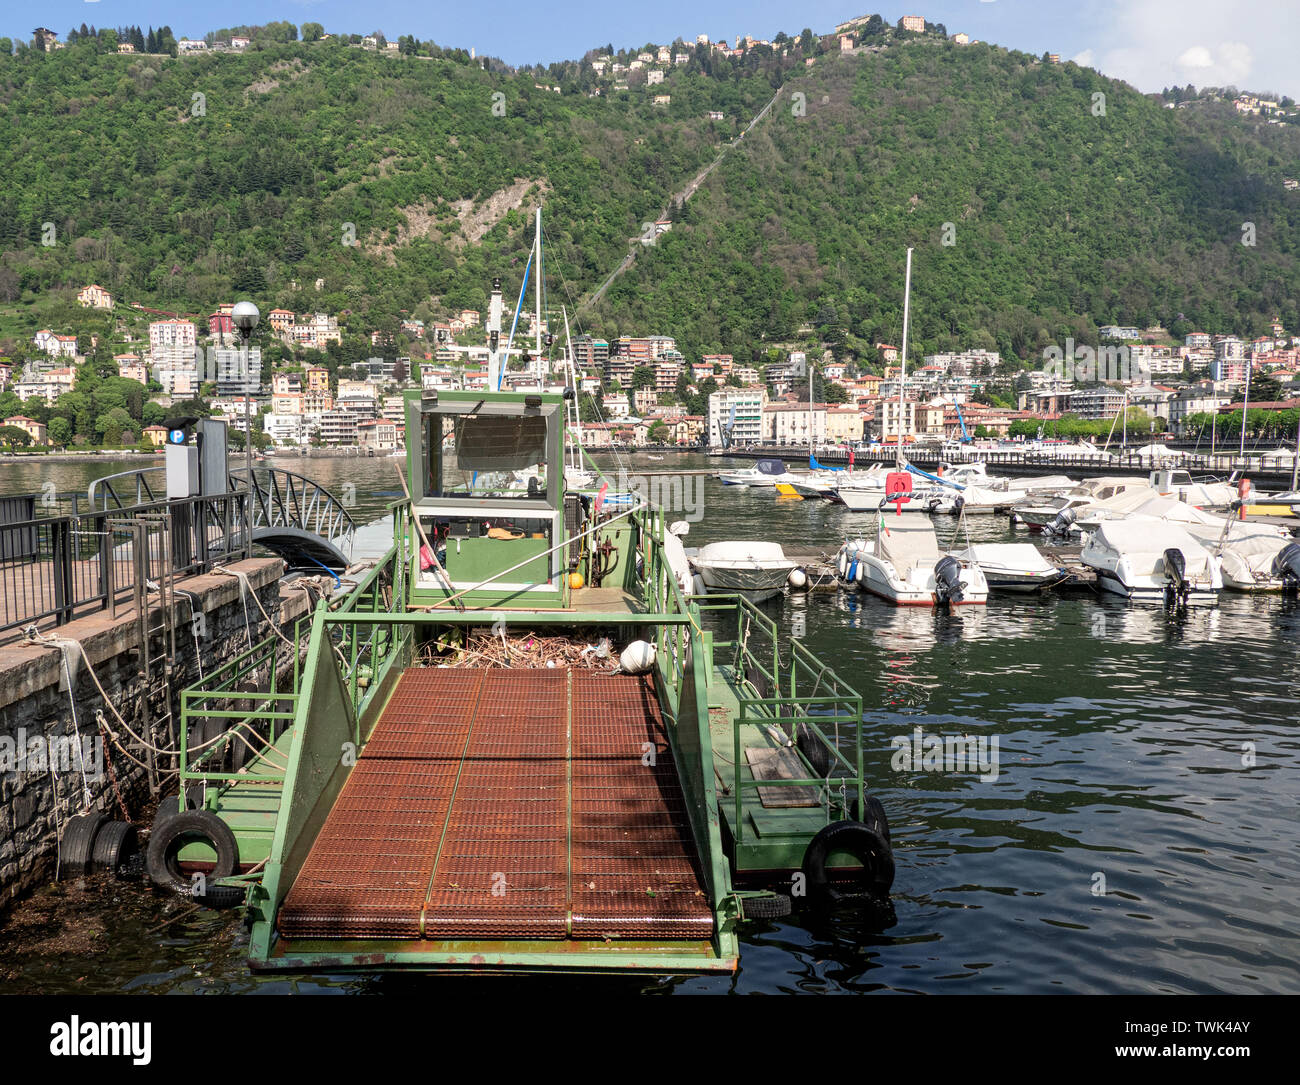 Como Lake - Italy. naval vehicle for water cleaning and waste collection, moored in the port of Como - Stock Image